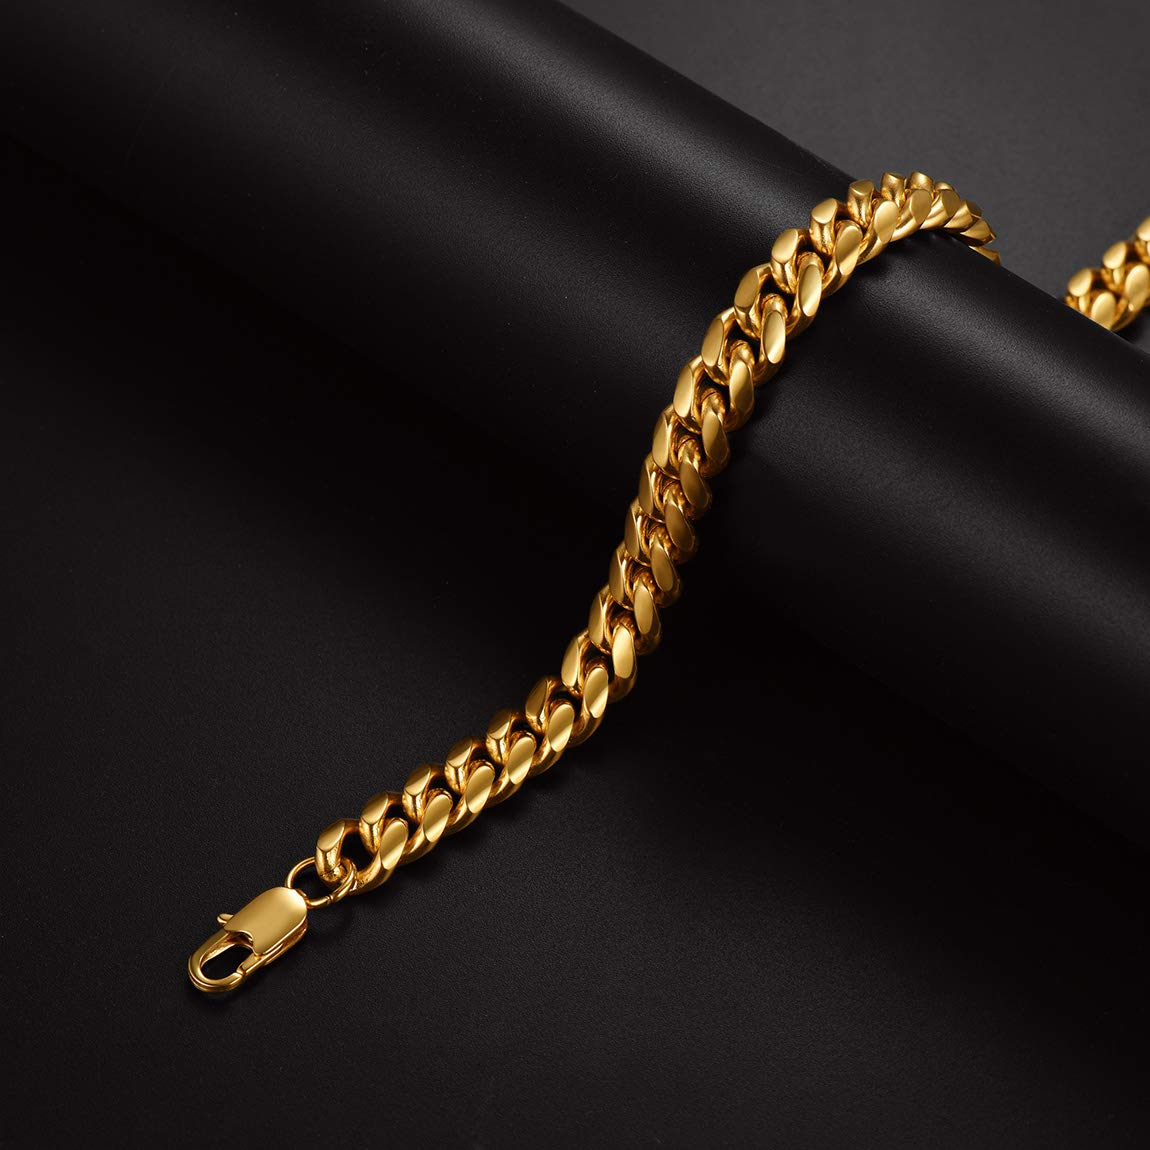 6//9//14mm Width ChainsPro Men Chunky Miami Cuban Chain Necklace with Gift Box Gold//Steel//Black Custom Available 18//20//22//24//26//28//30inch Length